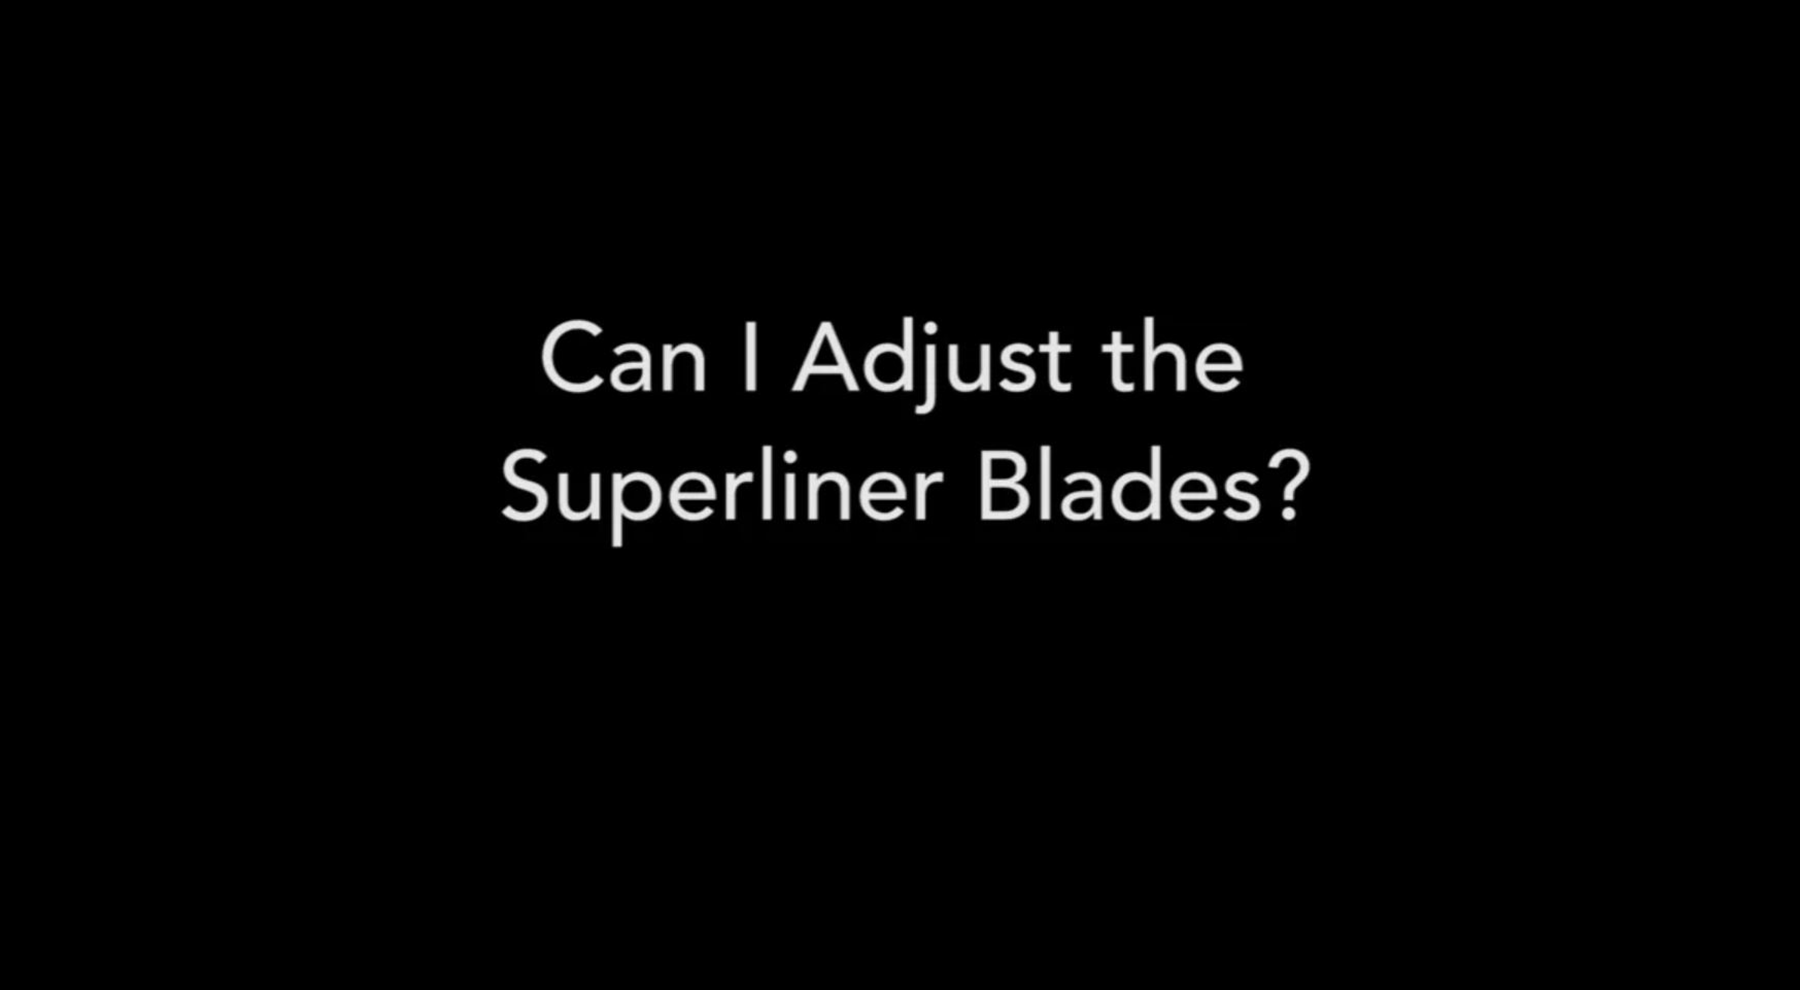 Can I Adjust the Superliner Blades?